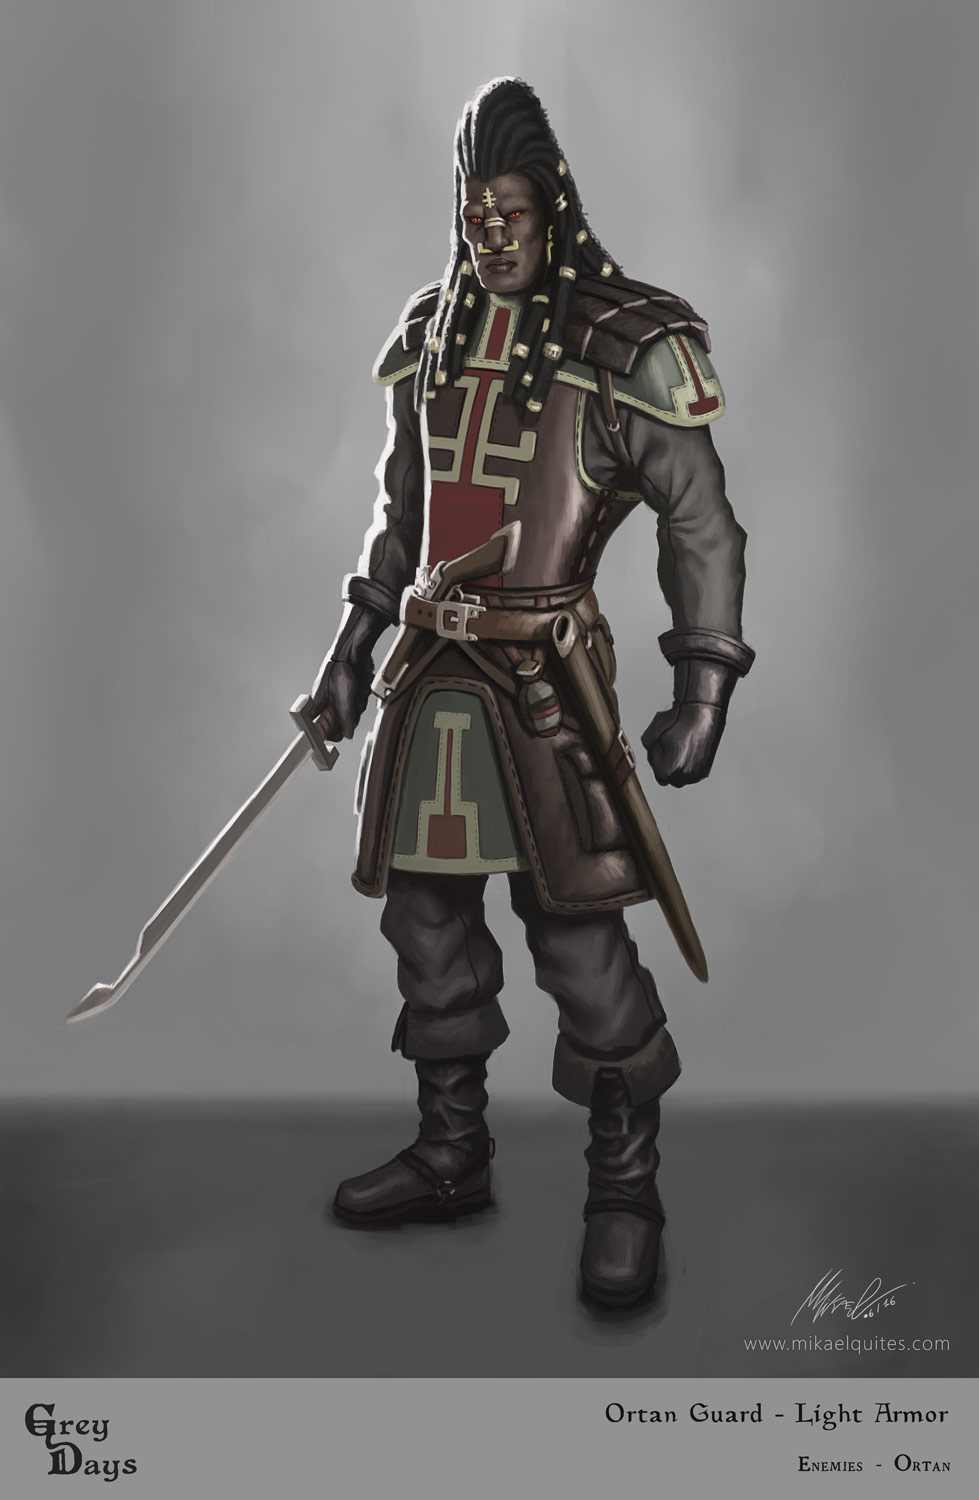 Grey Days - Ortan Guard Light Armor by mikaelquites